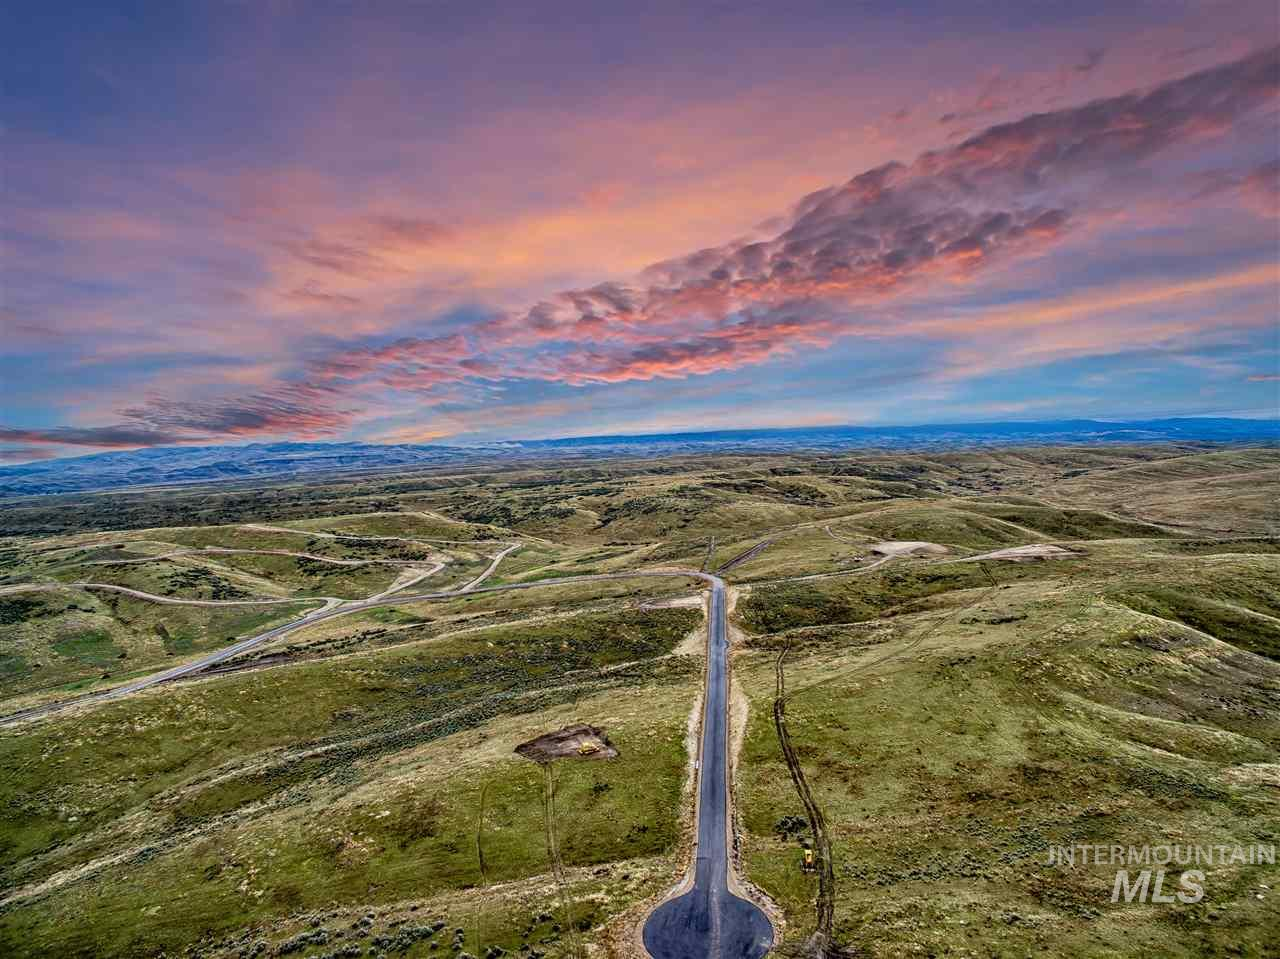 Enjoy spectacular views & stunning sunsets on this 10 acre lot in Eagle, ID! Bring your own builder! Room for horses, barns, corral, pasture, shop, garden, vineyard, you name it! Water rights included. Adjacent & accessible BLM land provides miles of trail riding while only a short 17 minute drive to downtown Eagle. Truly the best of both worlds! More lots available, all with unique views & varied lot prices. Construction to commence within 2 years of purchase. Call with questions!